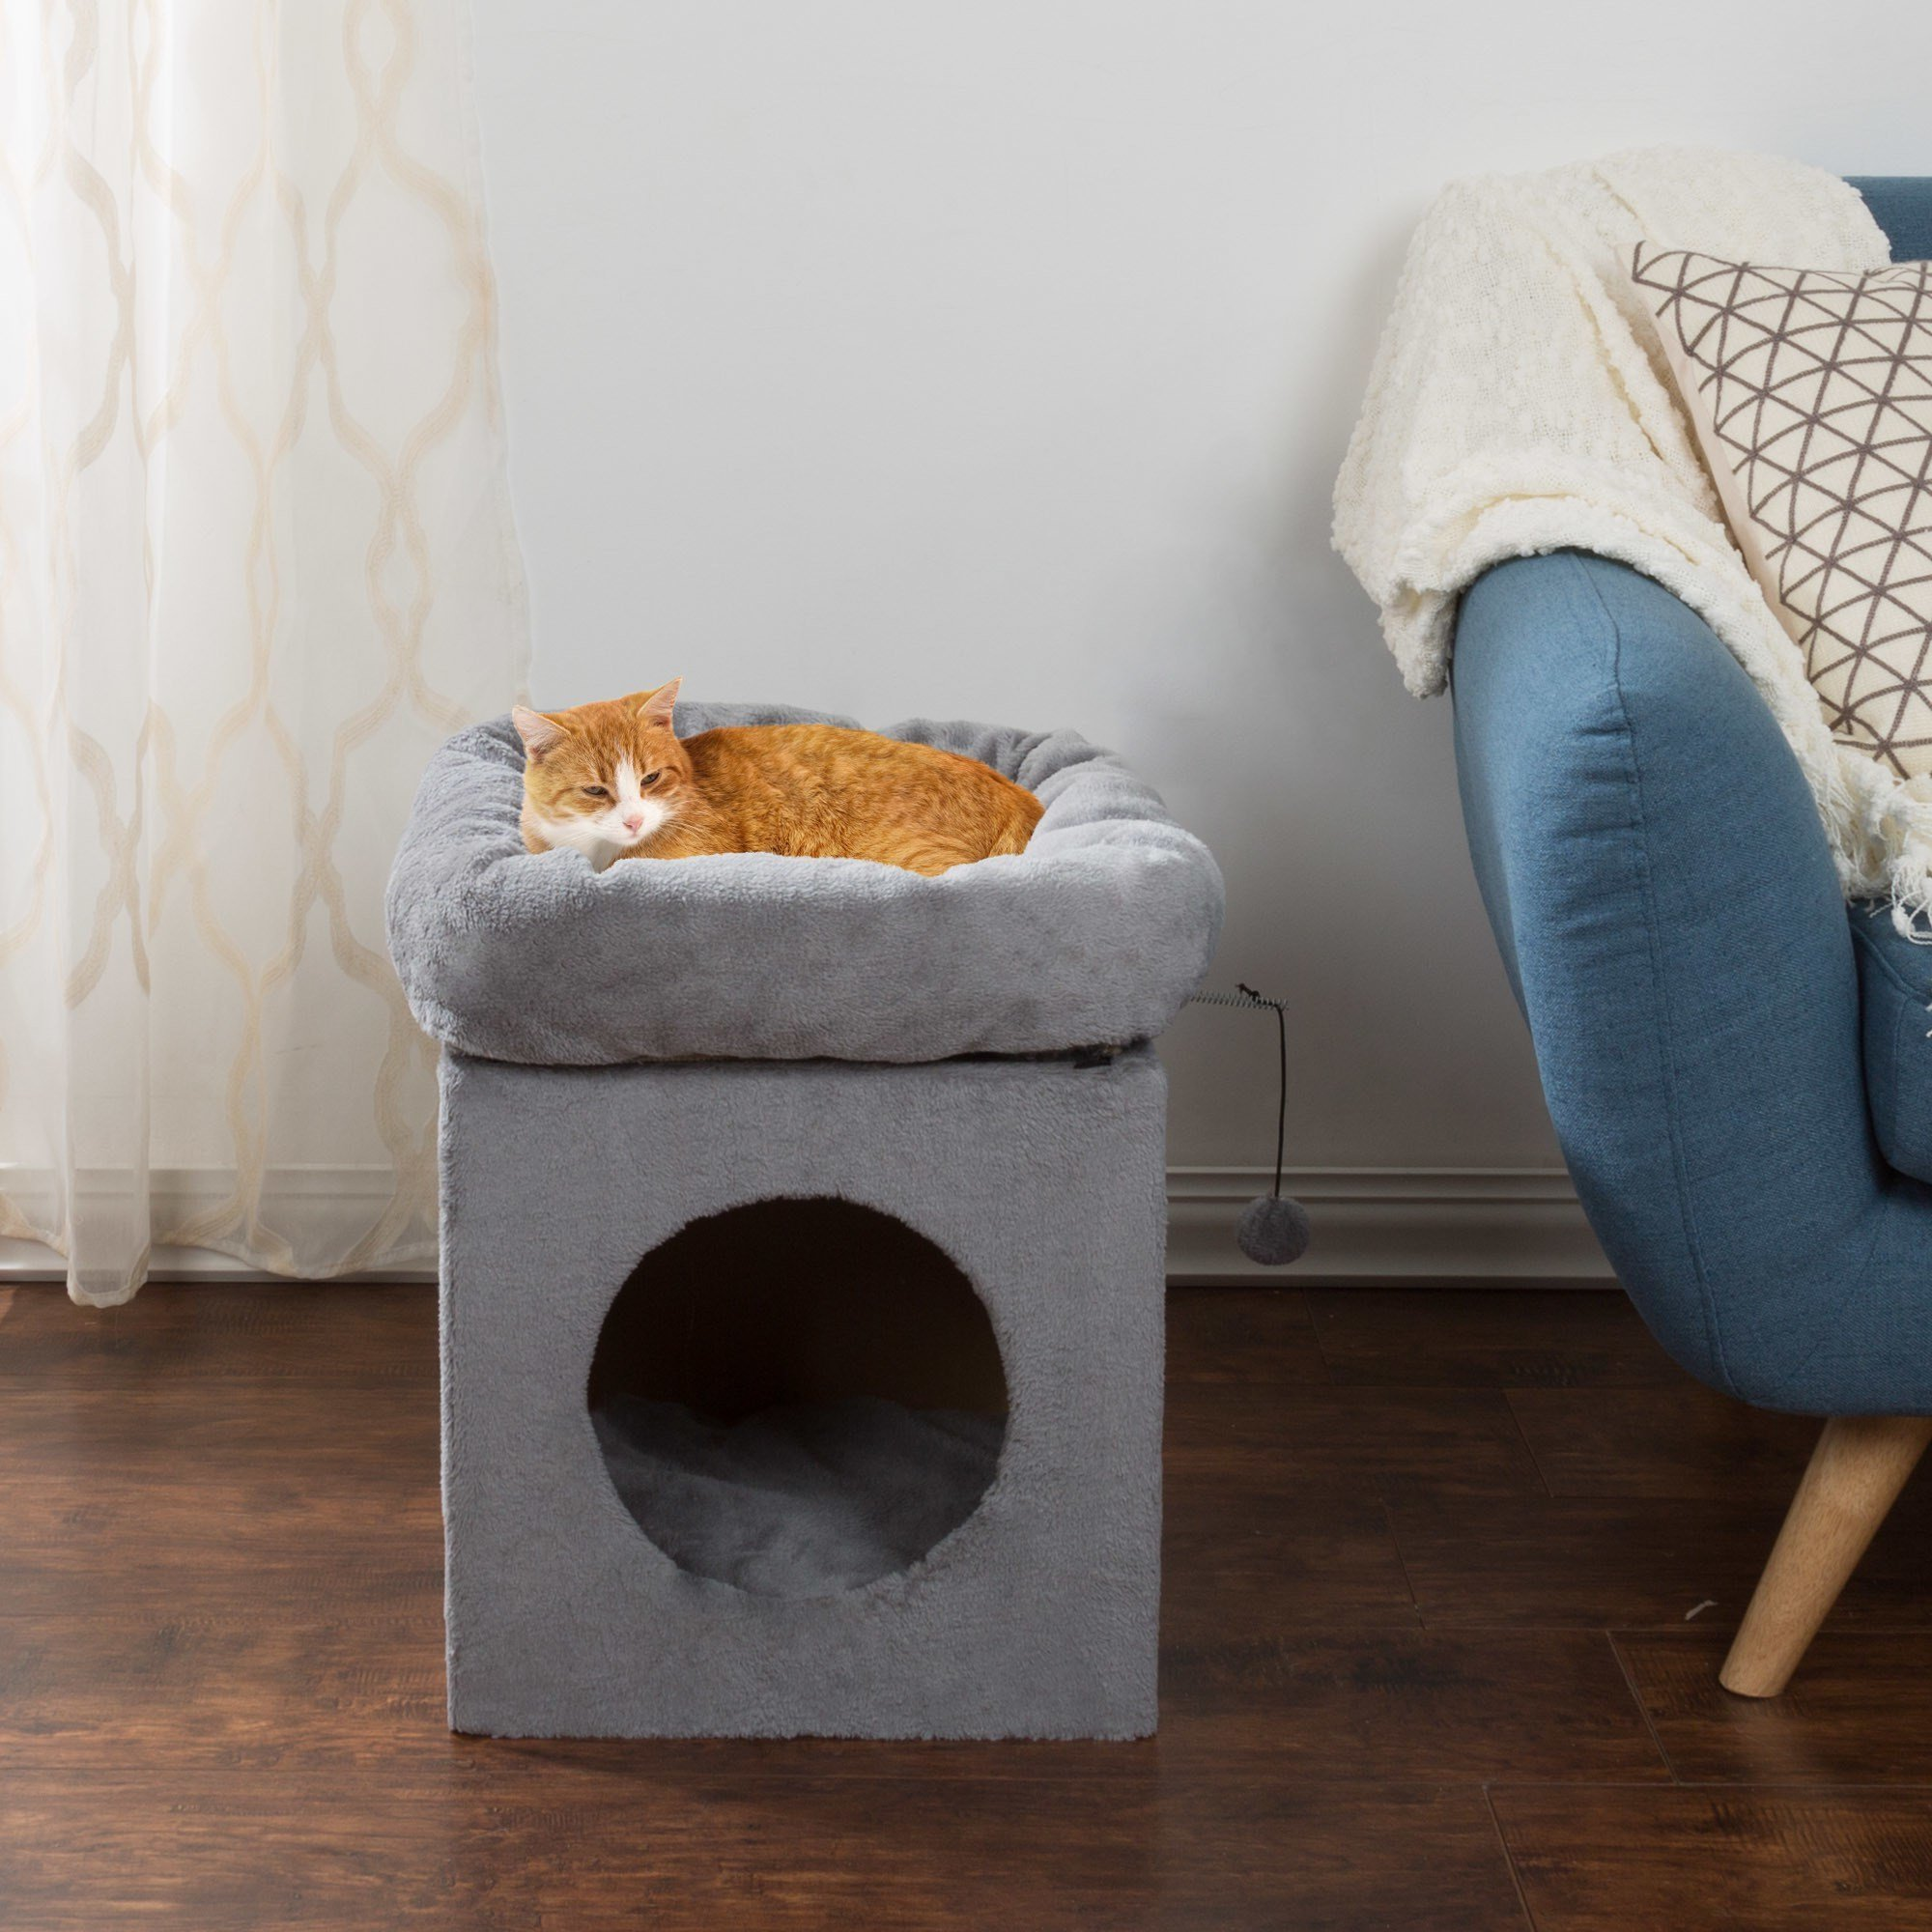 1 Piece Grey 20 Inches High Scratcher Cat Condo, Gray Tunnel Bed Pet House Kitty Furniture, Cave Shaped Round Opening Removable Plush Cushion Pads Ball Toy Fluffy Cubbyholes Joint Support, Polyester